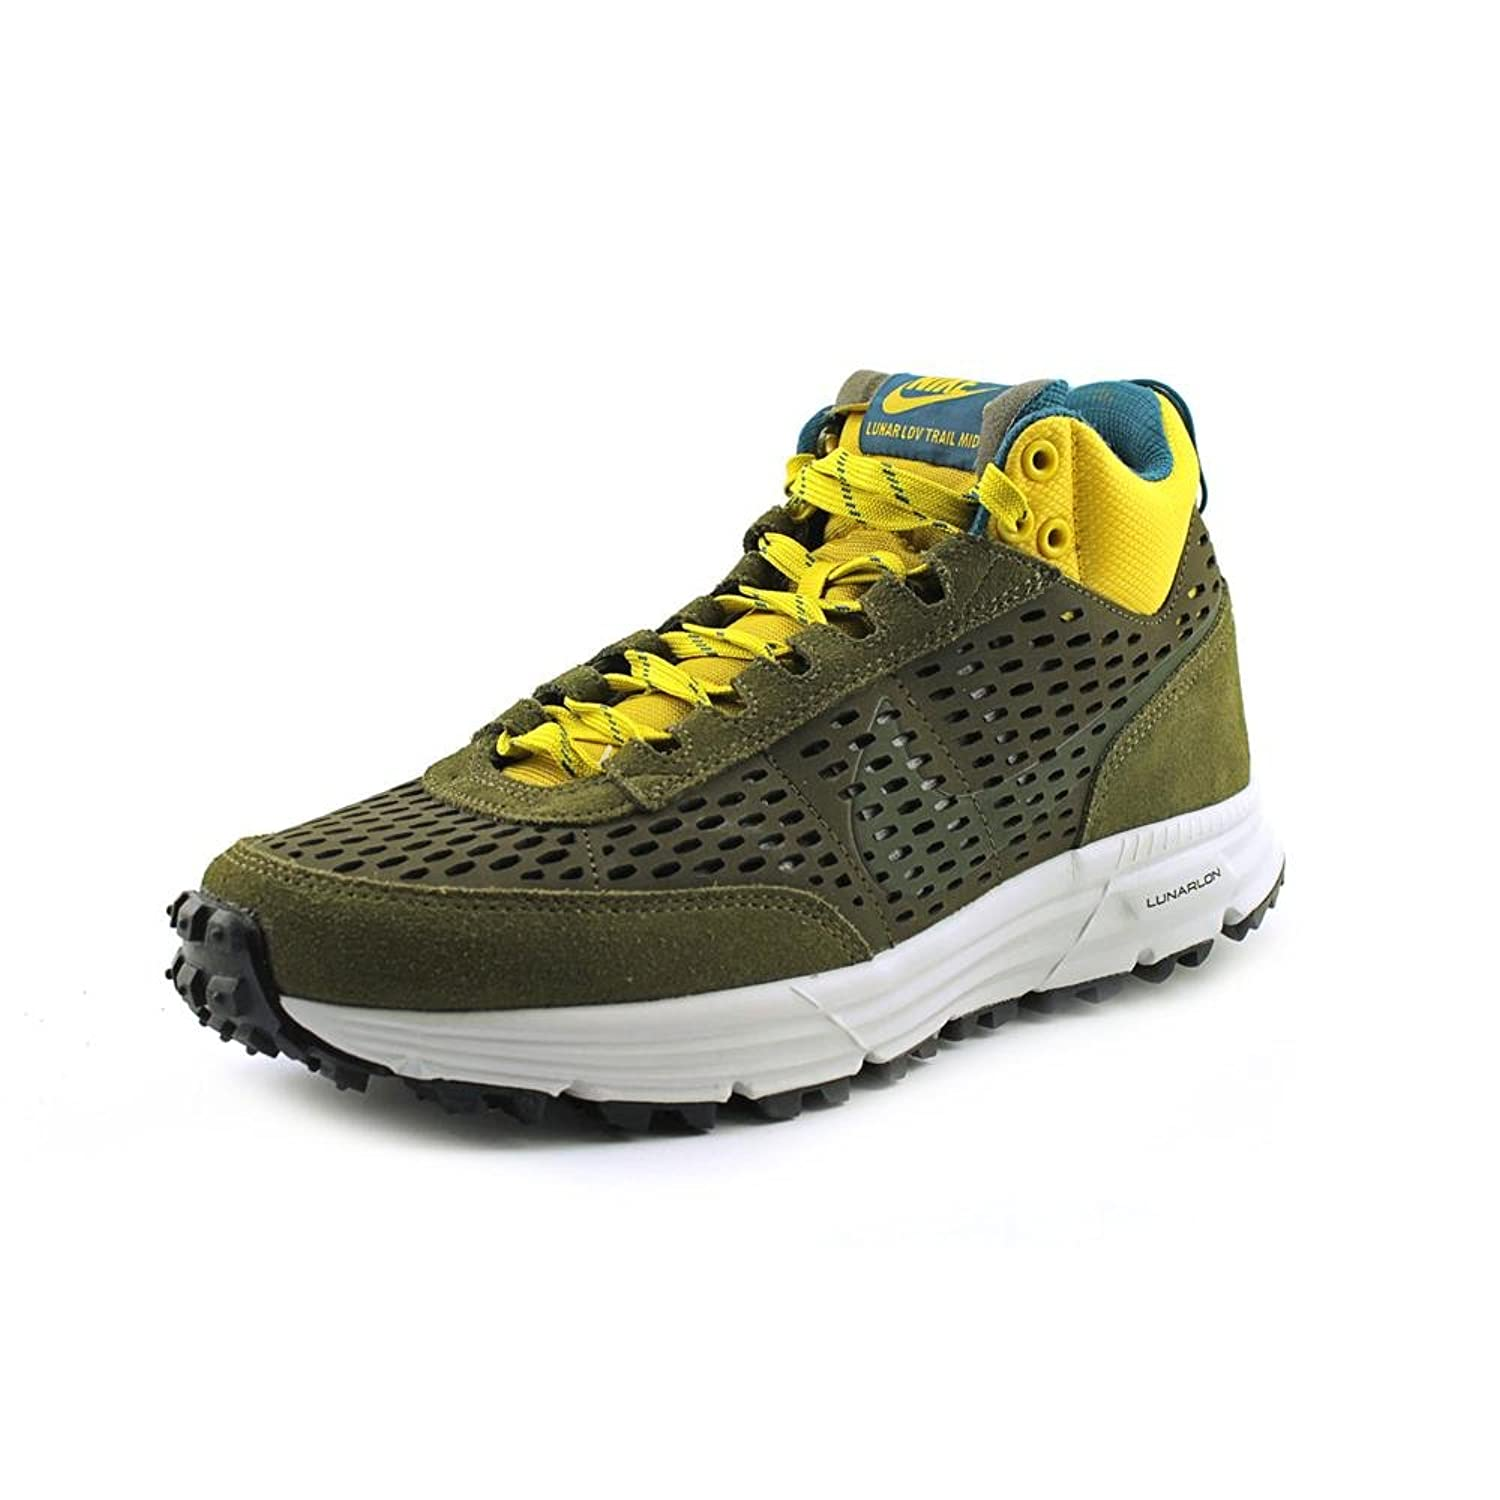 pretty nice dee5c a8acb ... coupon for new nike lunar ldv sneakerboot prm qs mens boots model  599471 330 57f99 25427